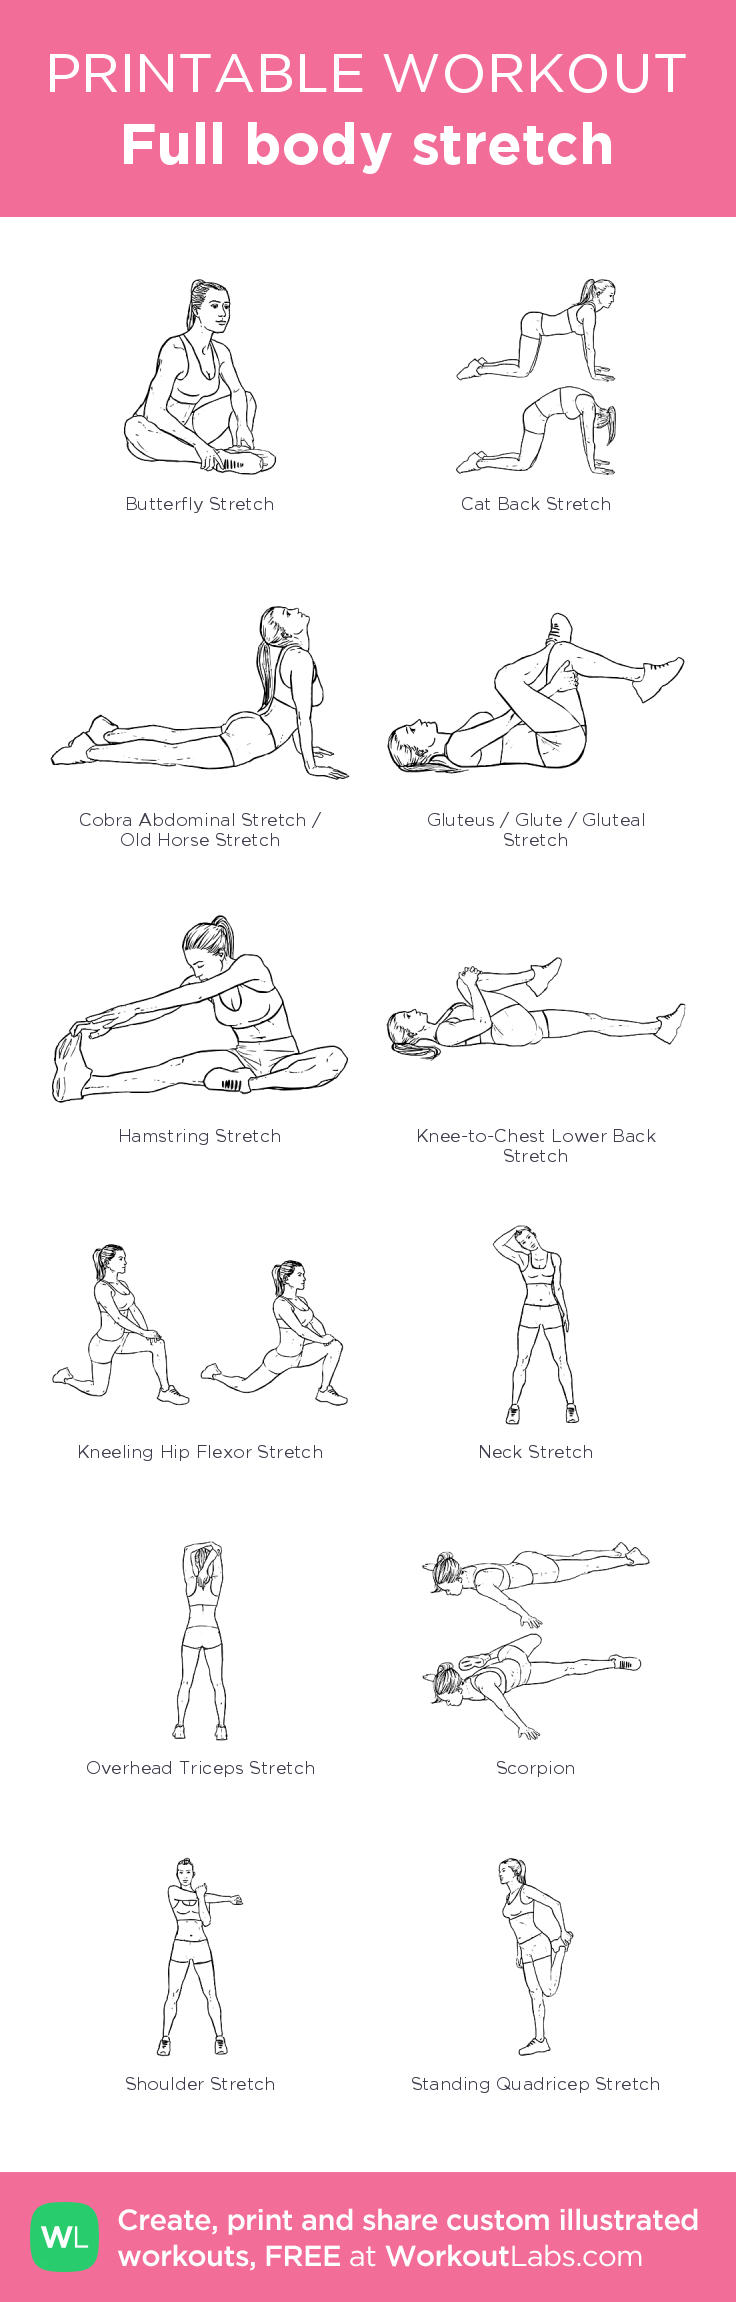 Full body stretch created at WorkoutLabs.com • Click through on mobile or customize and save as PDF at http://workoutlabs.com/s/fp4TN #mobileworkout #customworkout